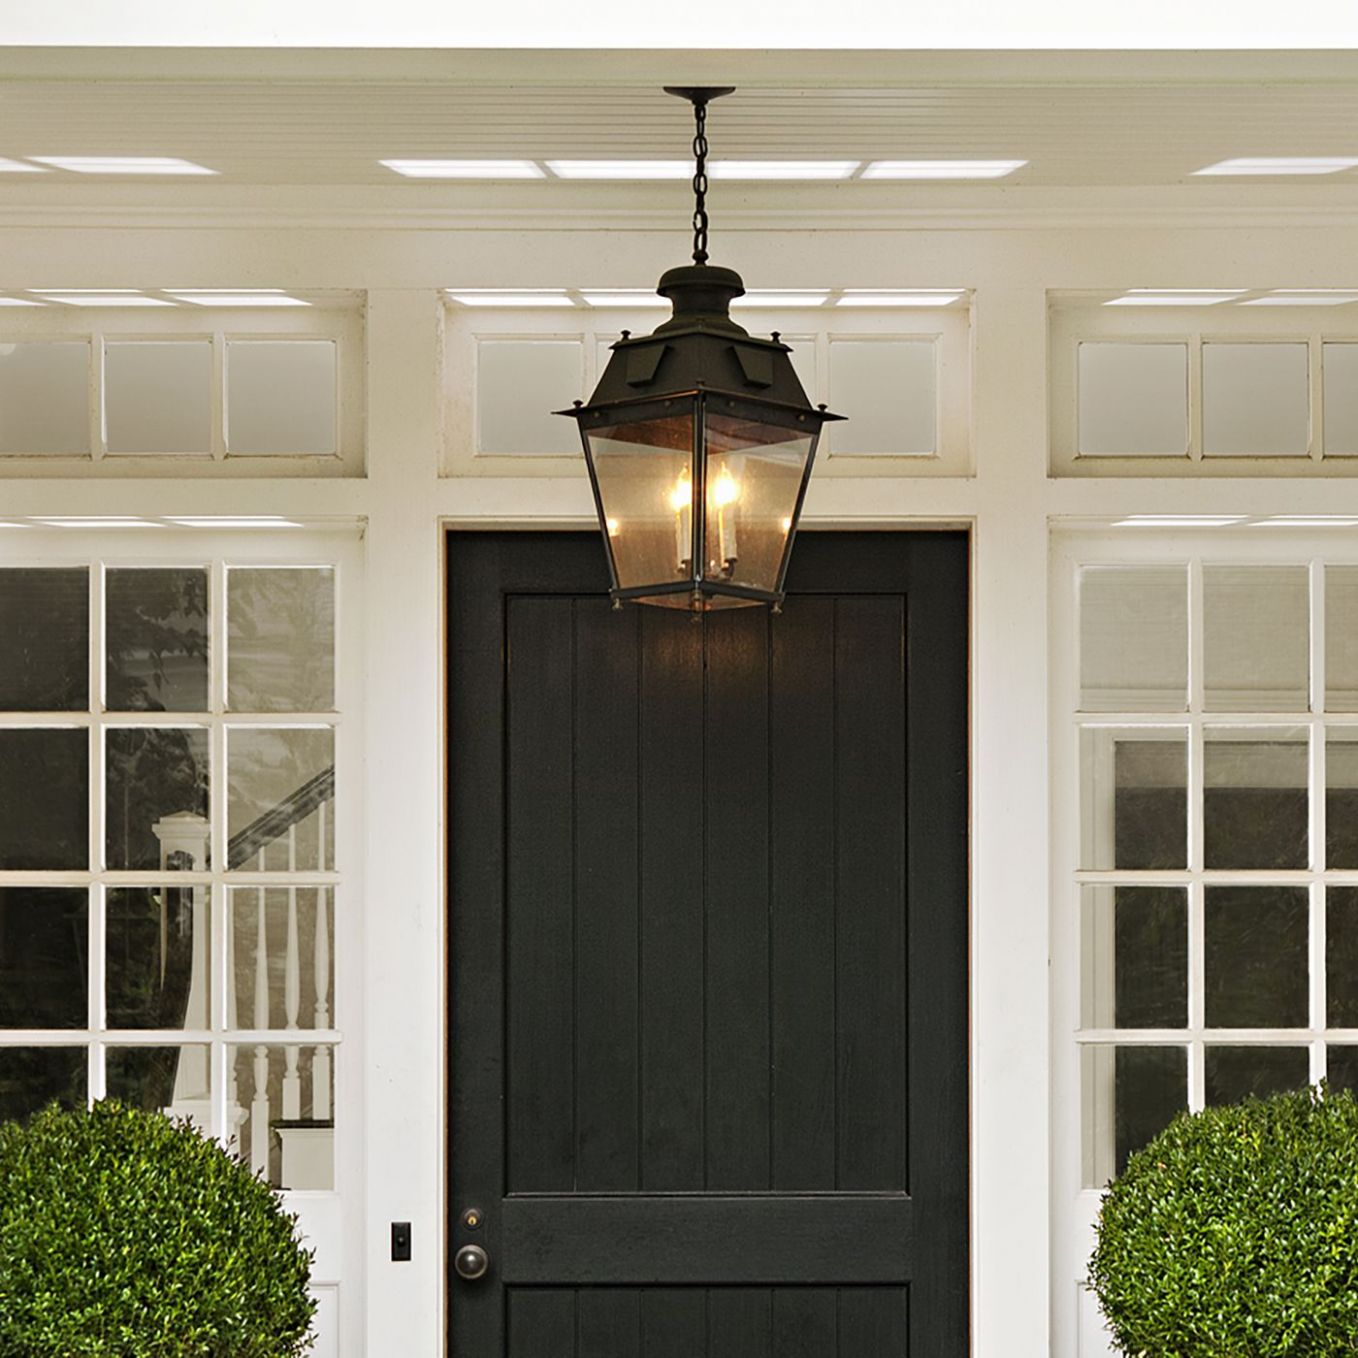 All About Front Entry Lighting - This Old House - front porch lighting ideas